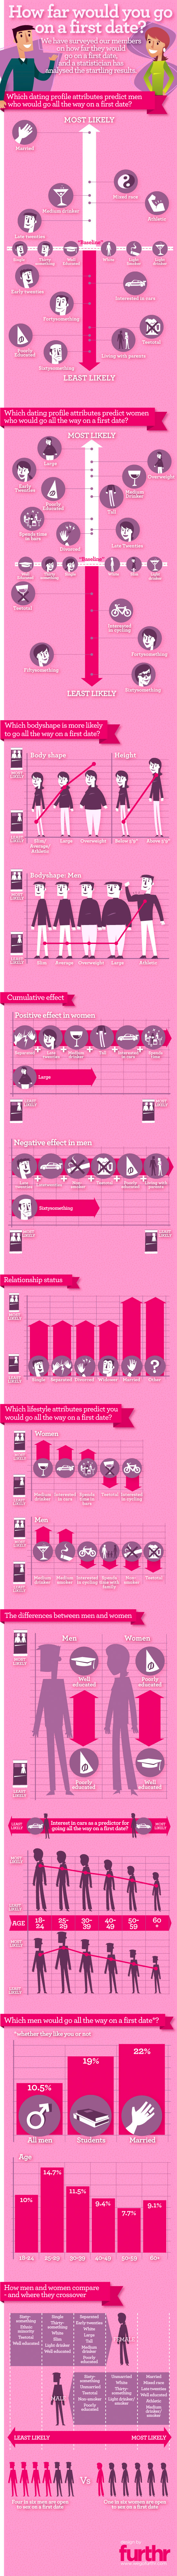 Infographic: Dating Profile Attributes vs. First Date Outcomes